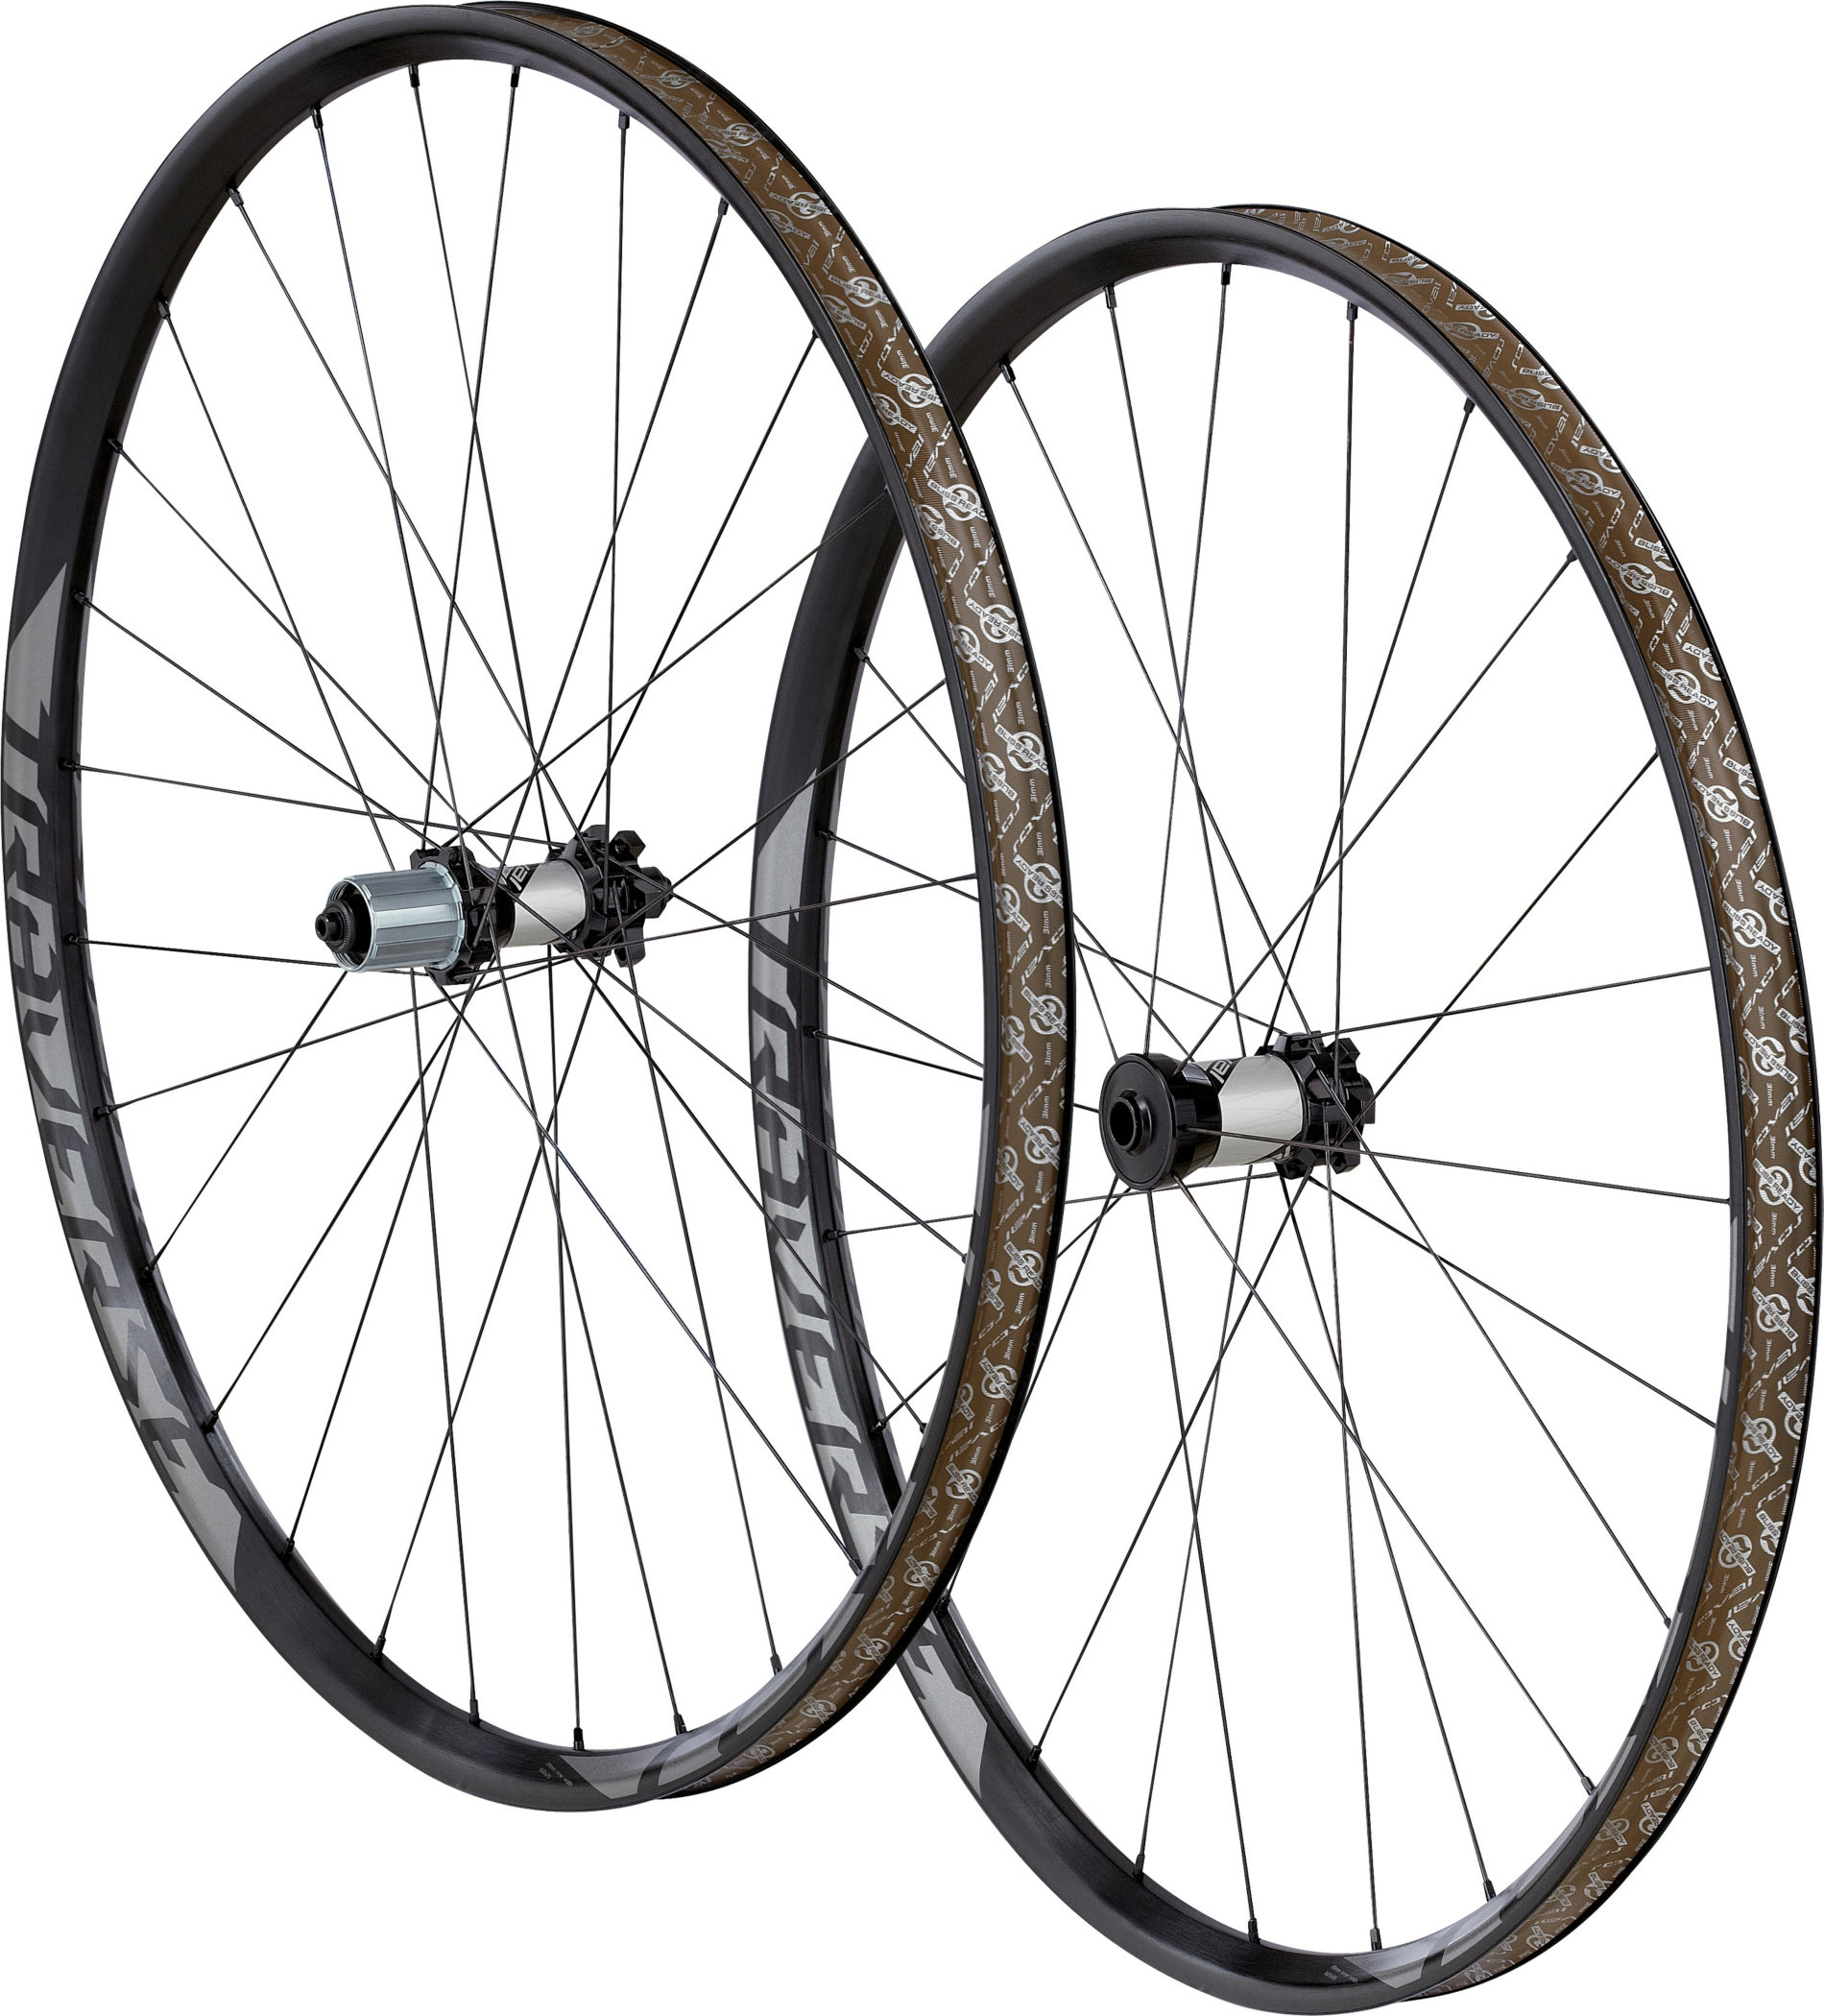 SPECIALIZED TRAVERSE 29 WHEELSET CHAR - Alpha Bikes